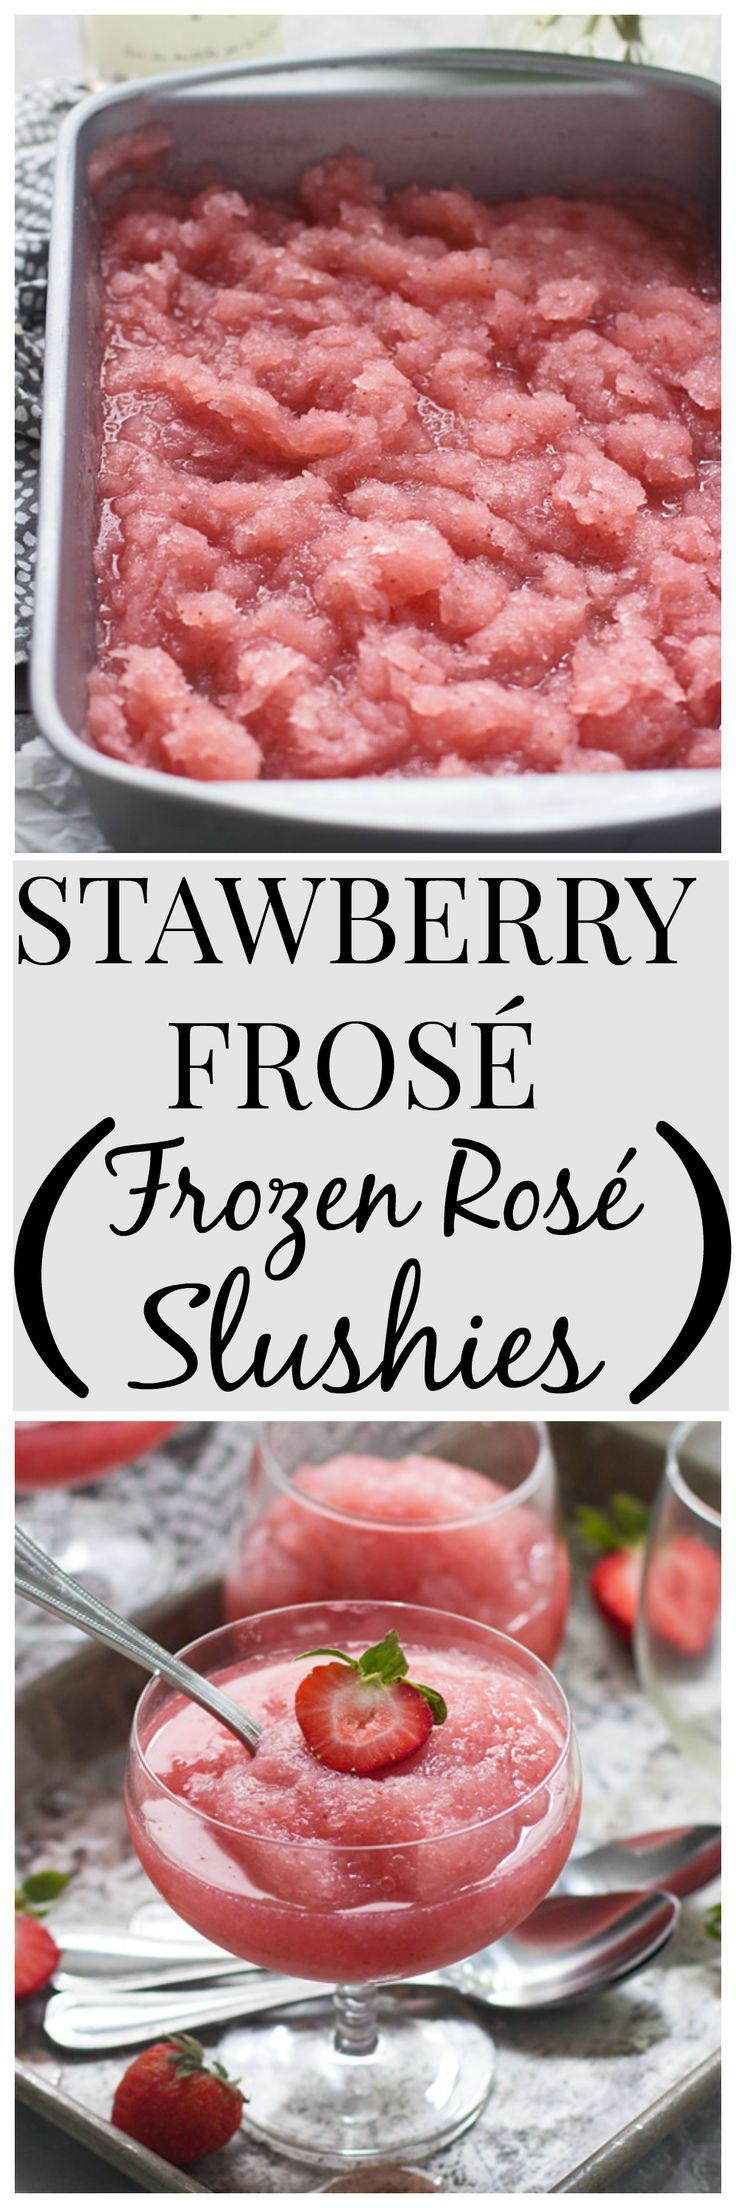 Strawberry Frosé (Frozen Rosé Slushies) - Only THREE ingredients and the ONLY drink you'll want for the rest of summer!